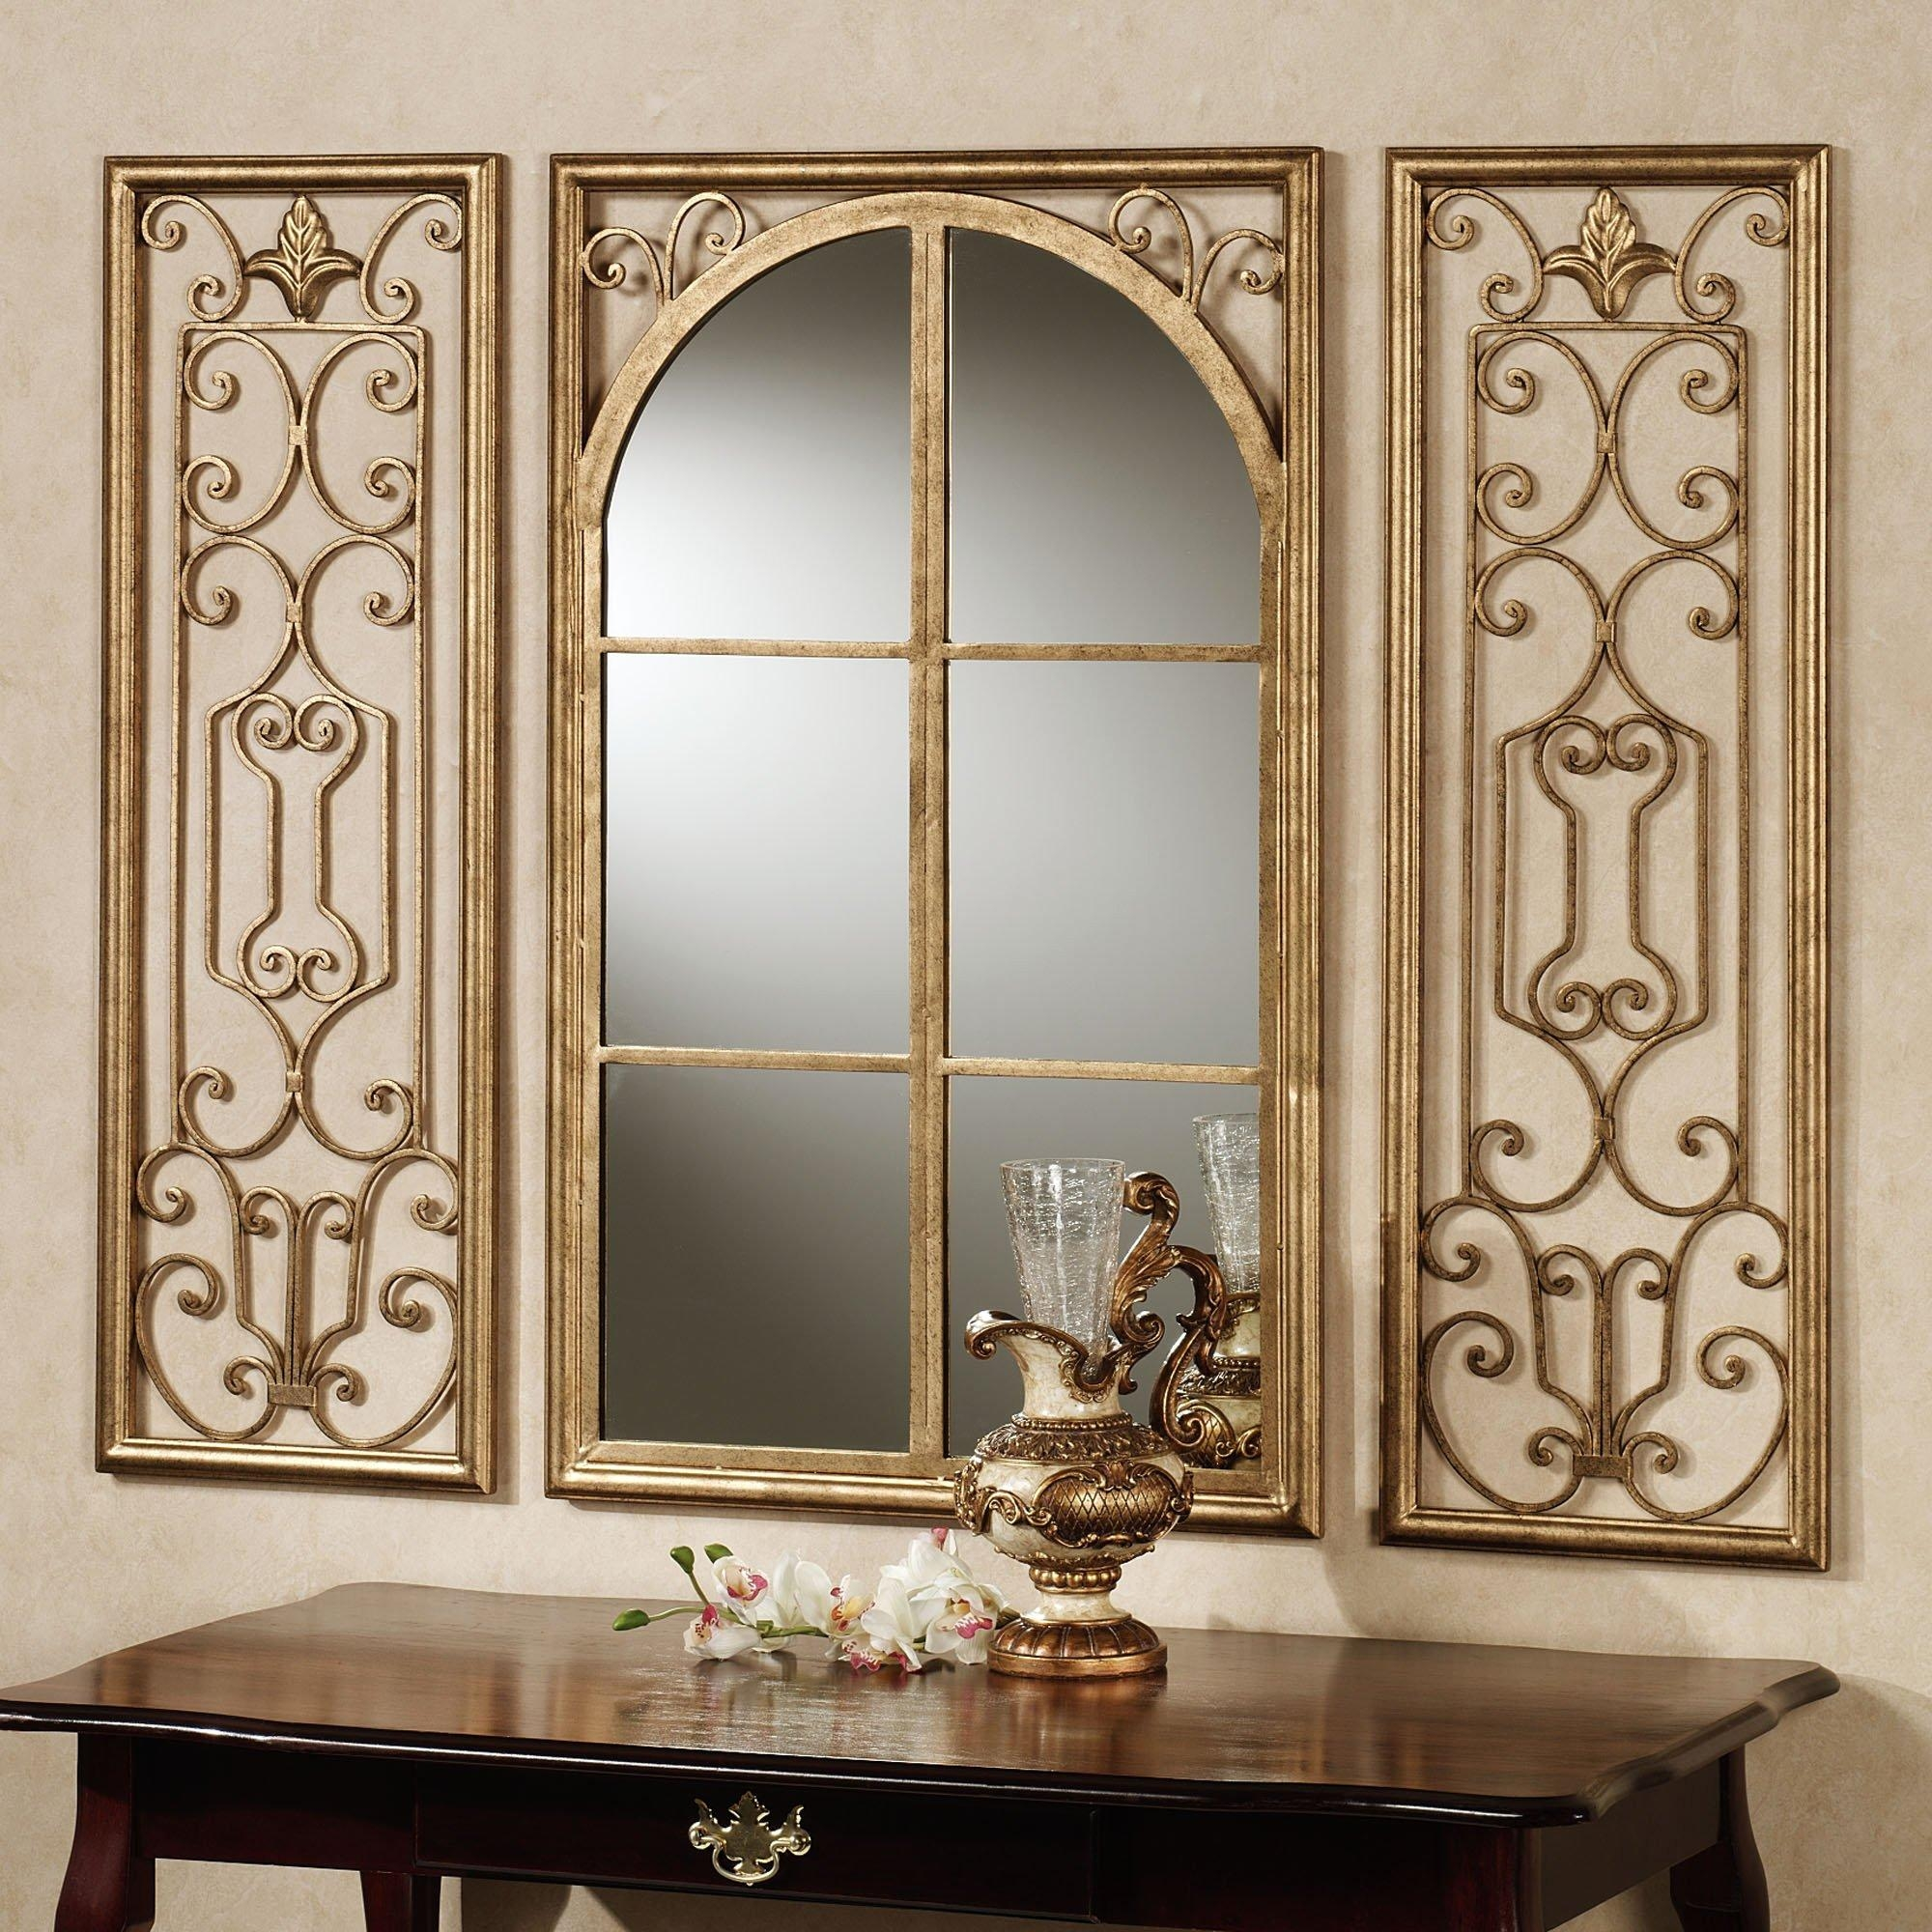 20 Inspirations Fancy Wall Mirrors for Sale